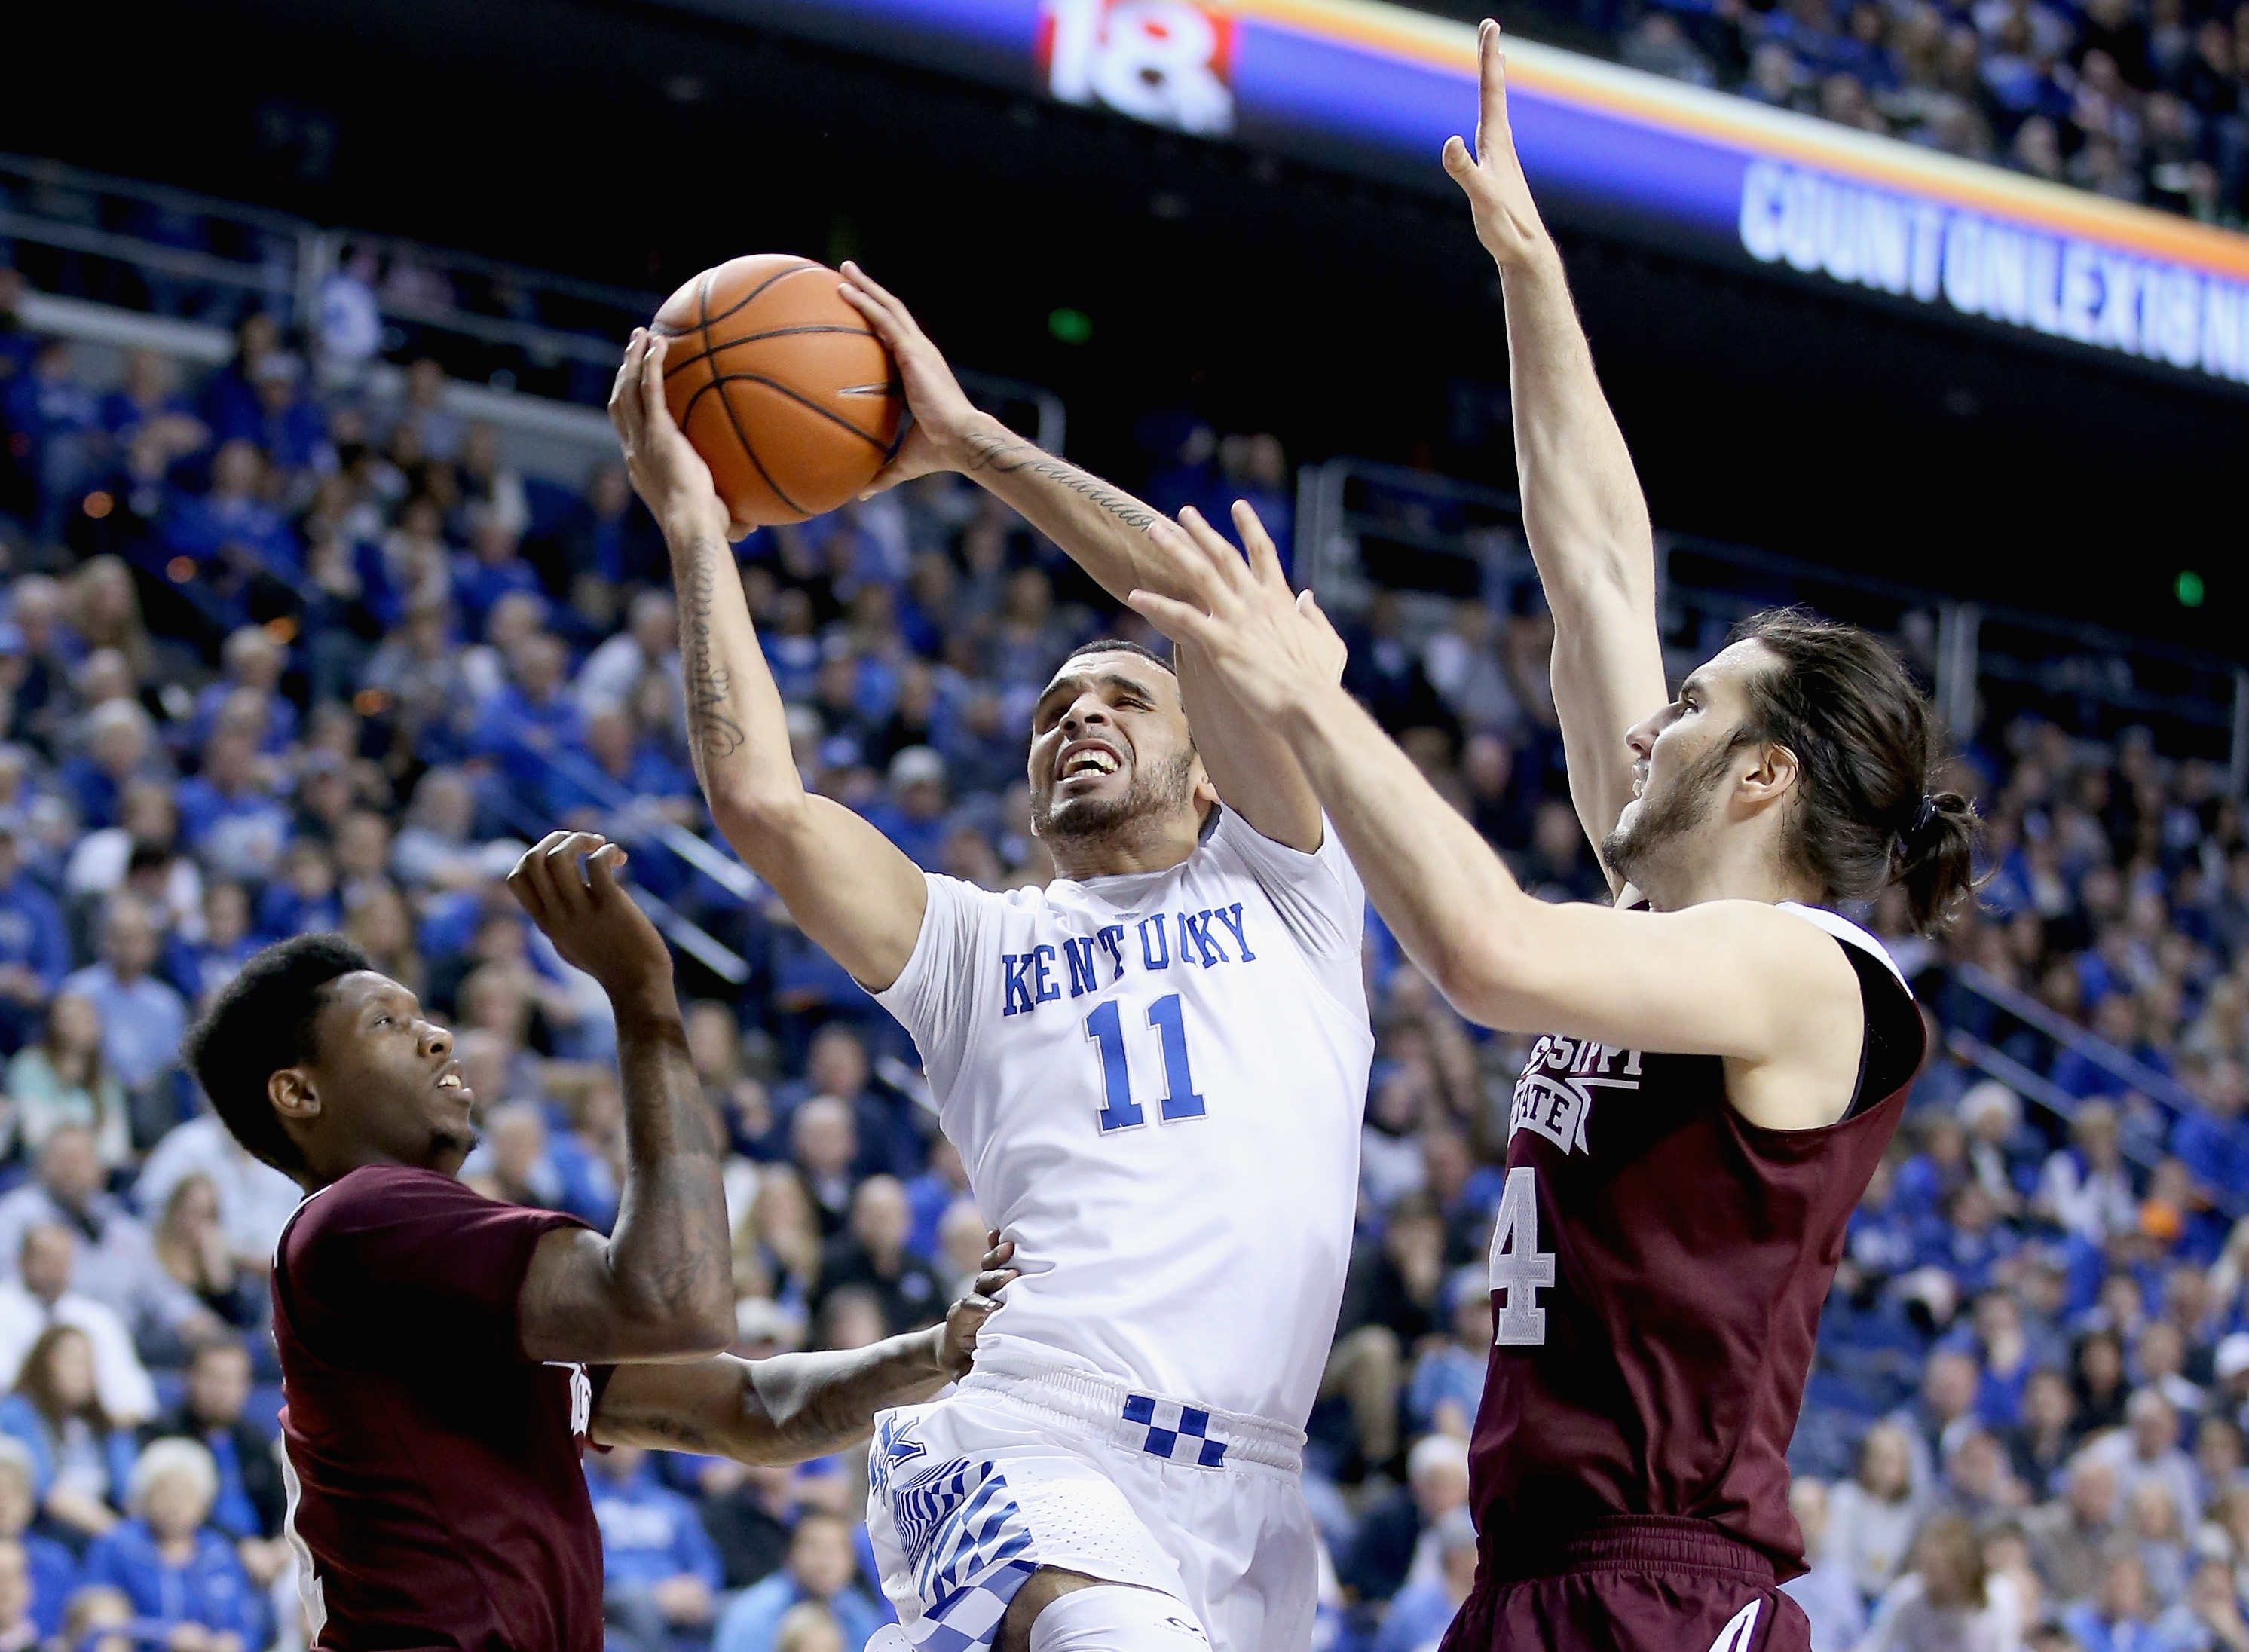 Biggest comeback in Calipari era keeps Kentucky's SEC home winning streak alive